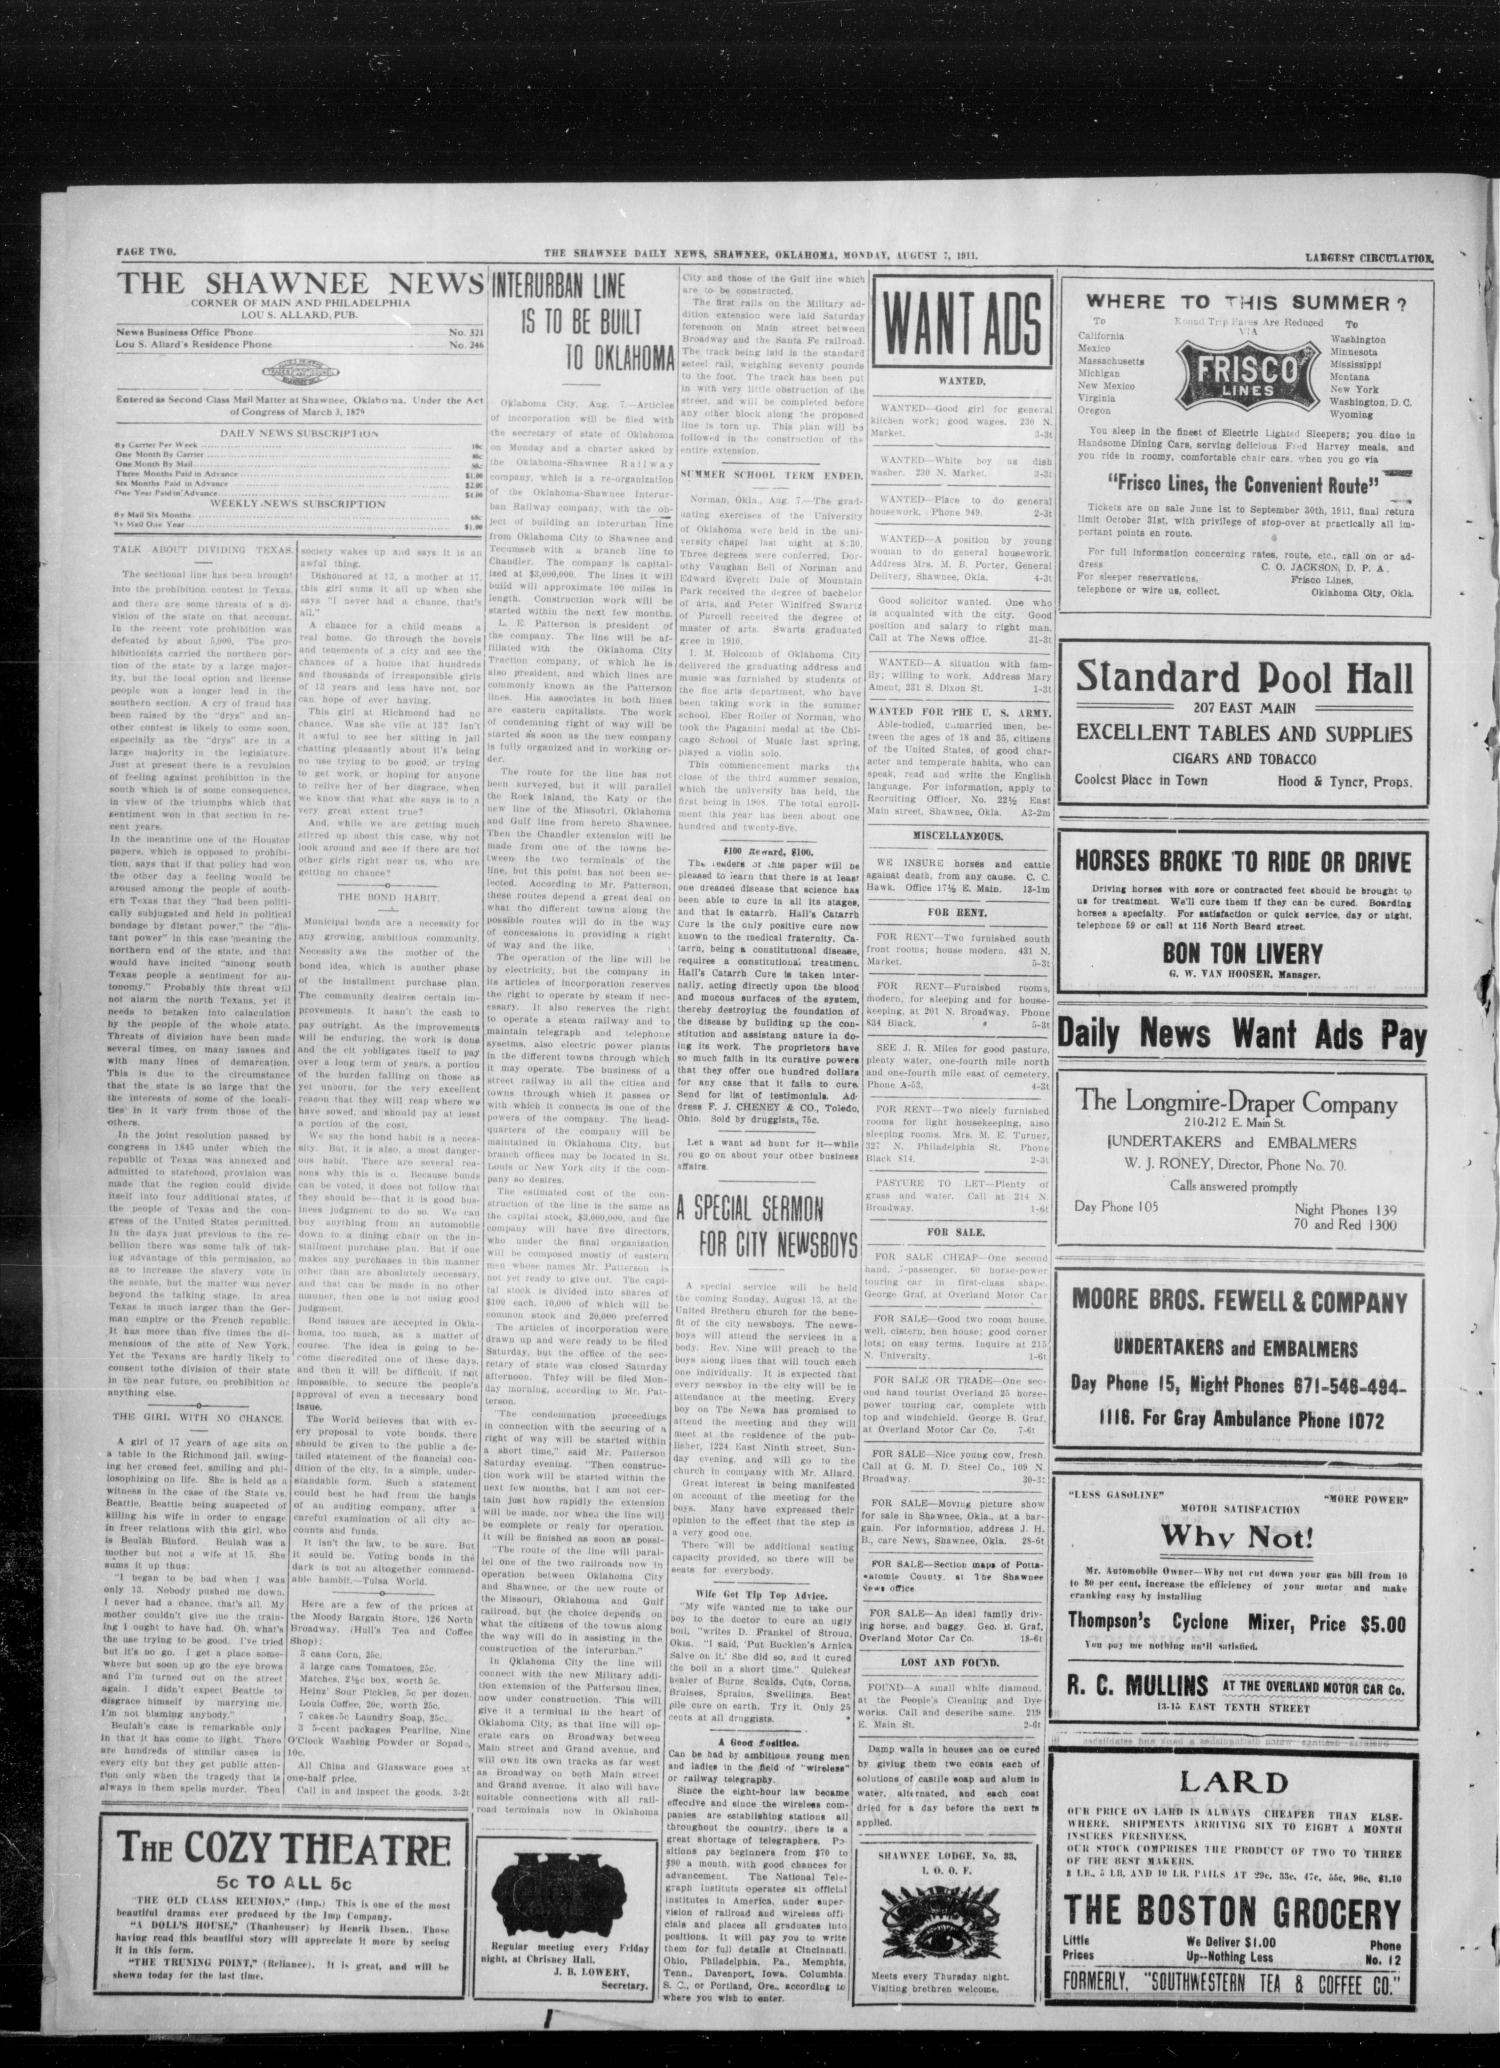 The Shawnee News (Shawnee, Okla.), Vol. 16, No. 116, Ed. 1 Monday, August 7, 1911                                                                                                      [Sequence #]: 2 of 4